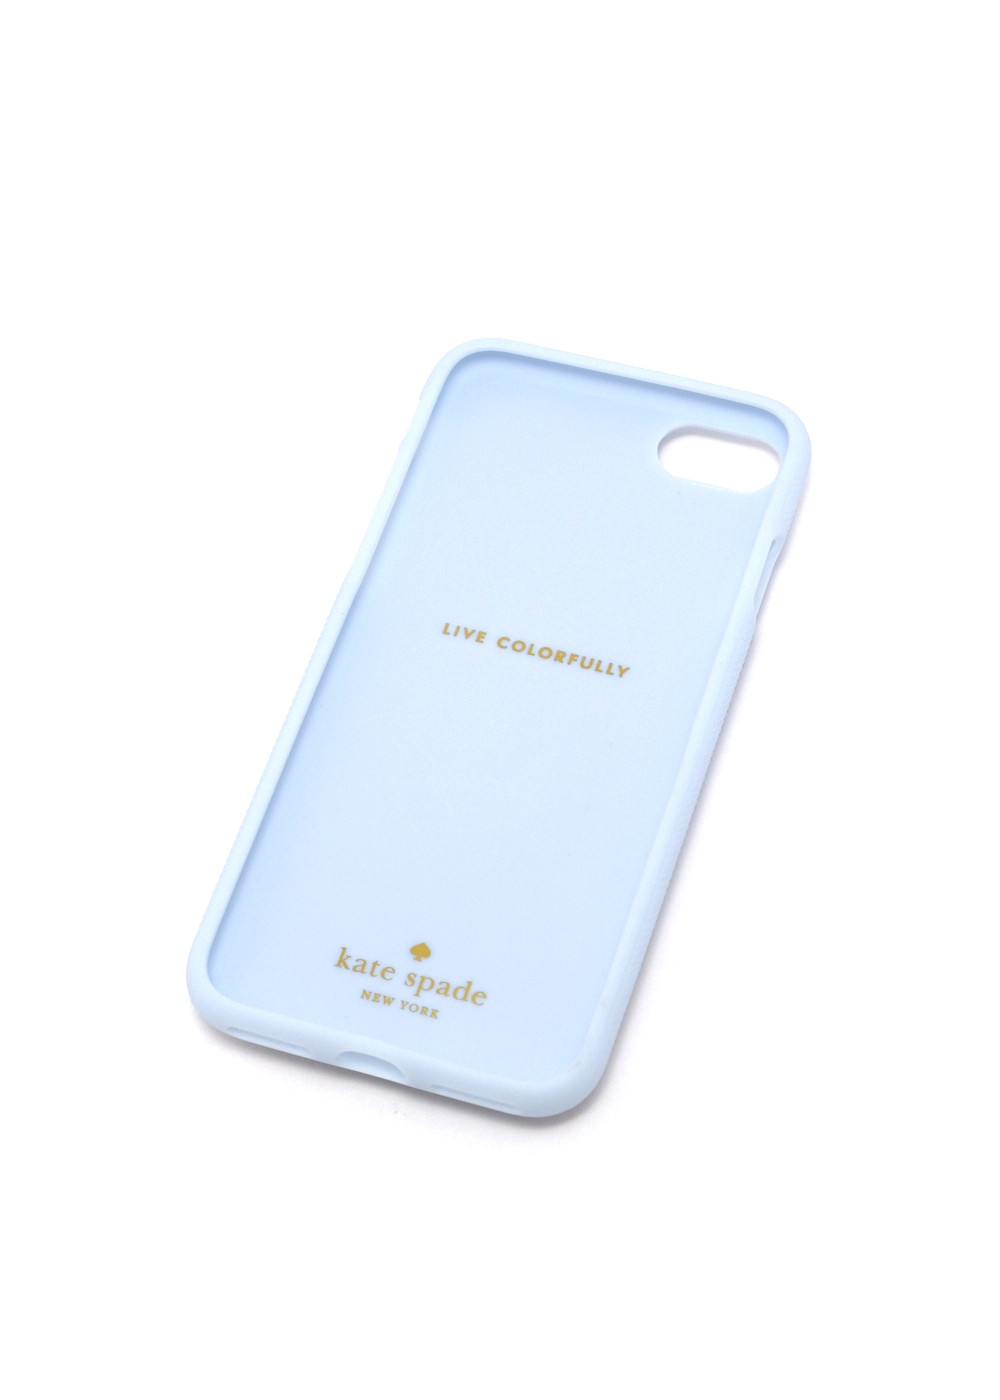 kate spade NEW YORK|ケイトスペードニューヨーク|IPHONE CASES|アイフォンケース|iPhone8PLUS CASE SILICONE SURFBOARD STAND